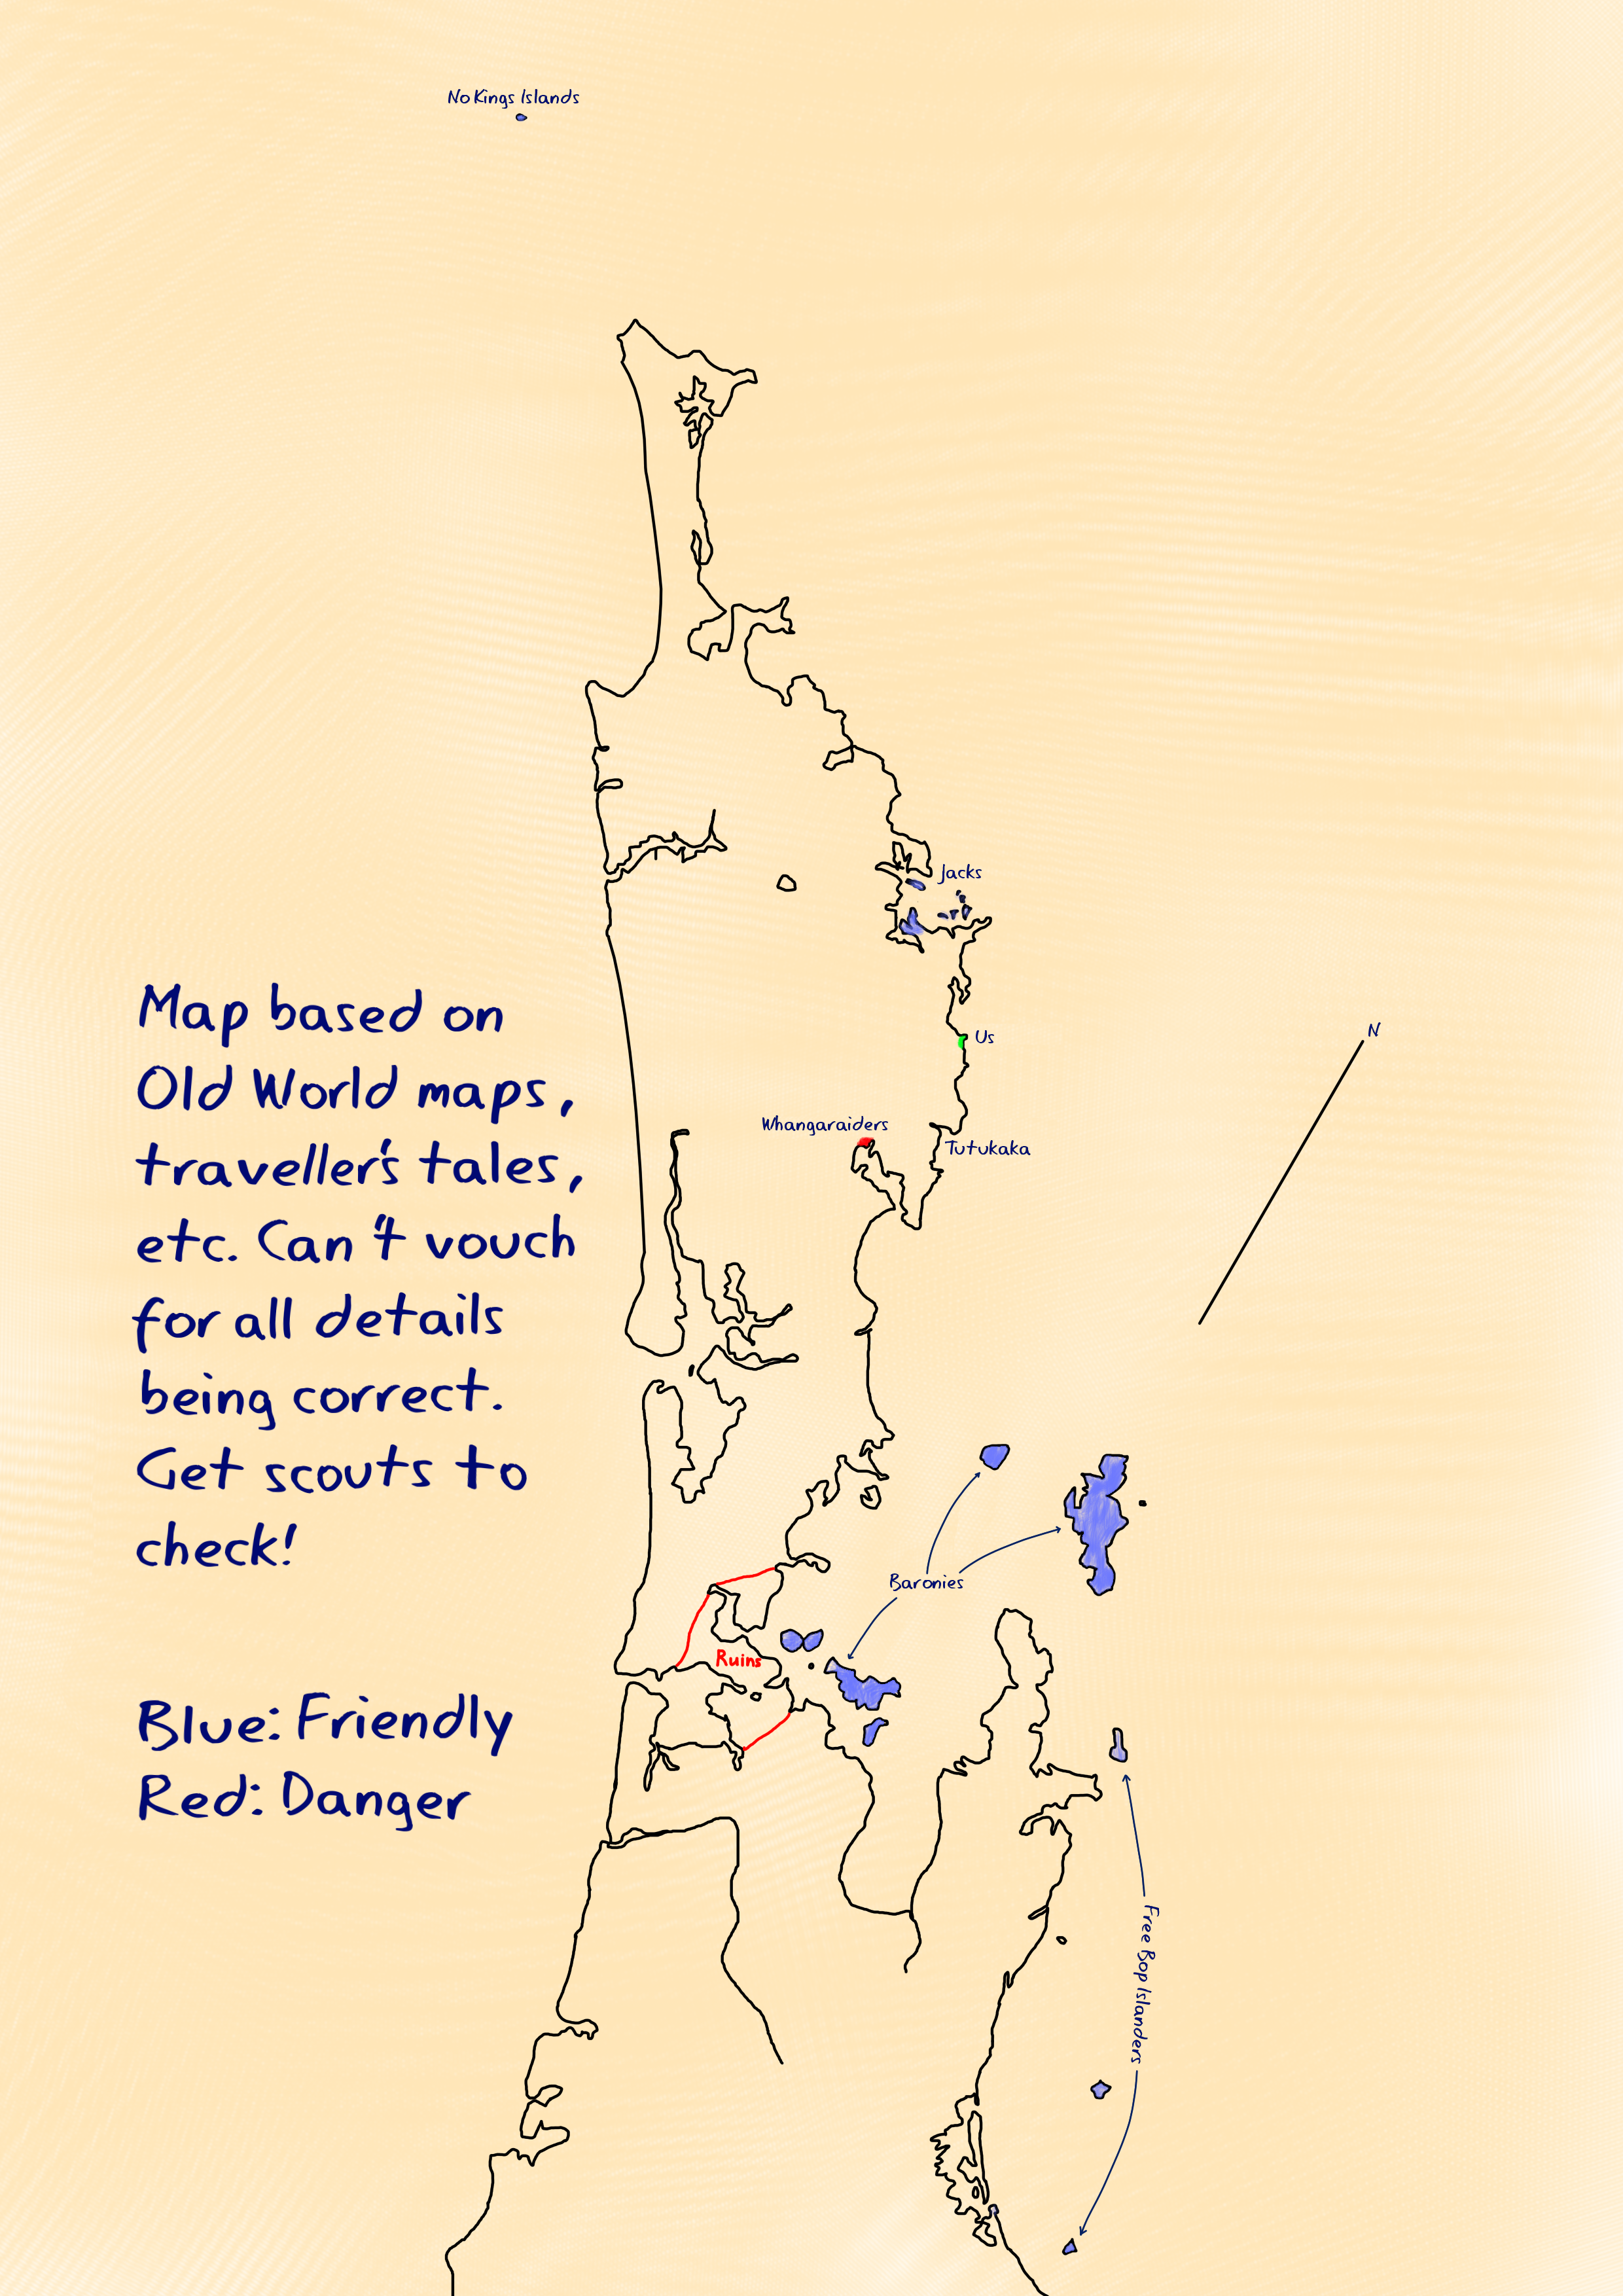 A traced map of the northern part of New Zealand, showing the locations of the Jacks, Last Resort, and other groups including the Baronies, the Free Bop Islanders, the No Kings Islands and the Whangaraiders. The ruins of Auckland are marked as dangerous.